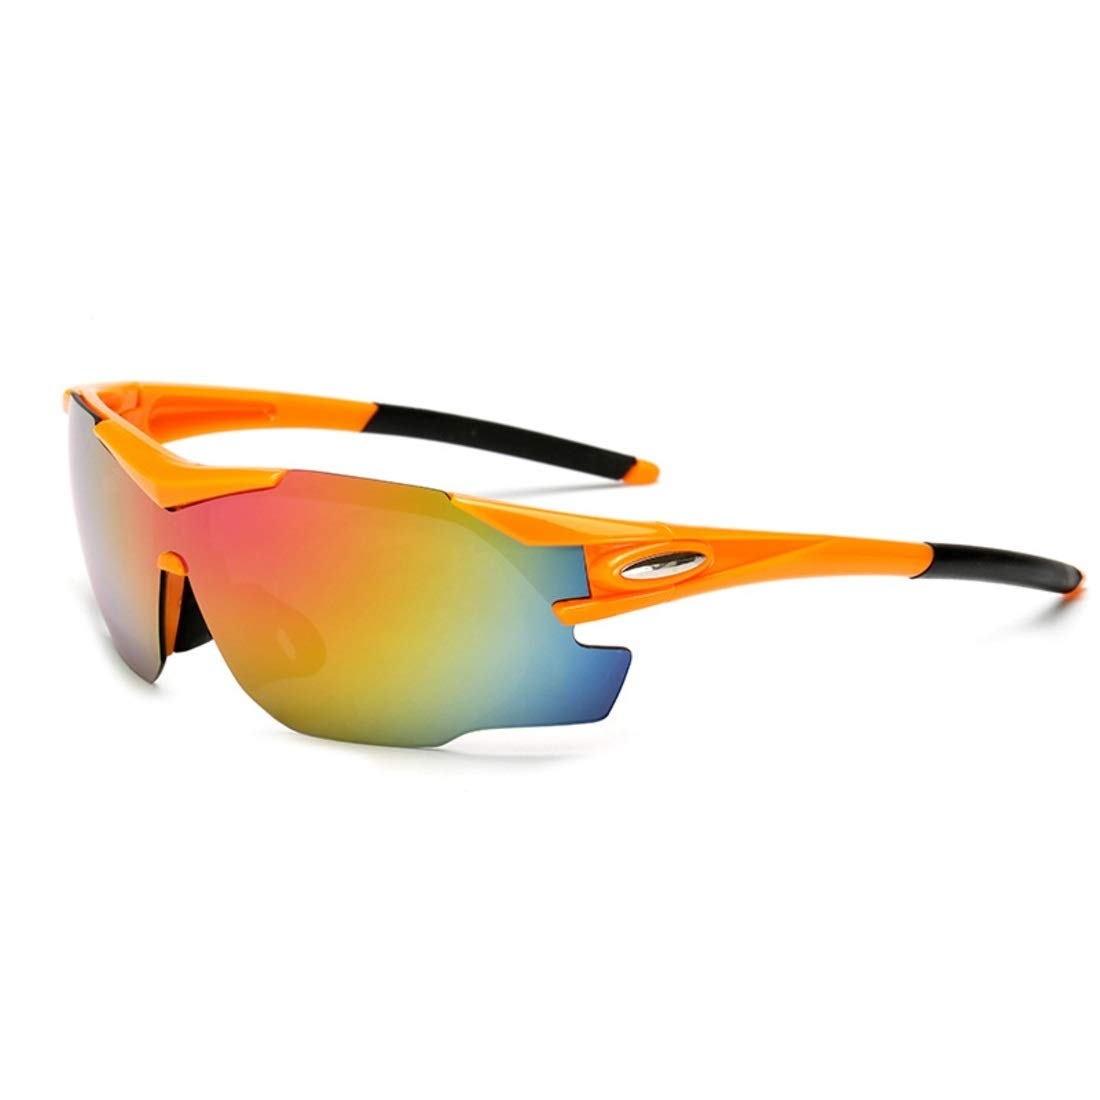 BAOYIT Riding Mountain Bike Motorcycle Men and Women Riding Windproof Glasses Windproof Sand Sunglasses Running Hiking Glass (Color : B) by BAOYIT